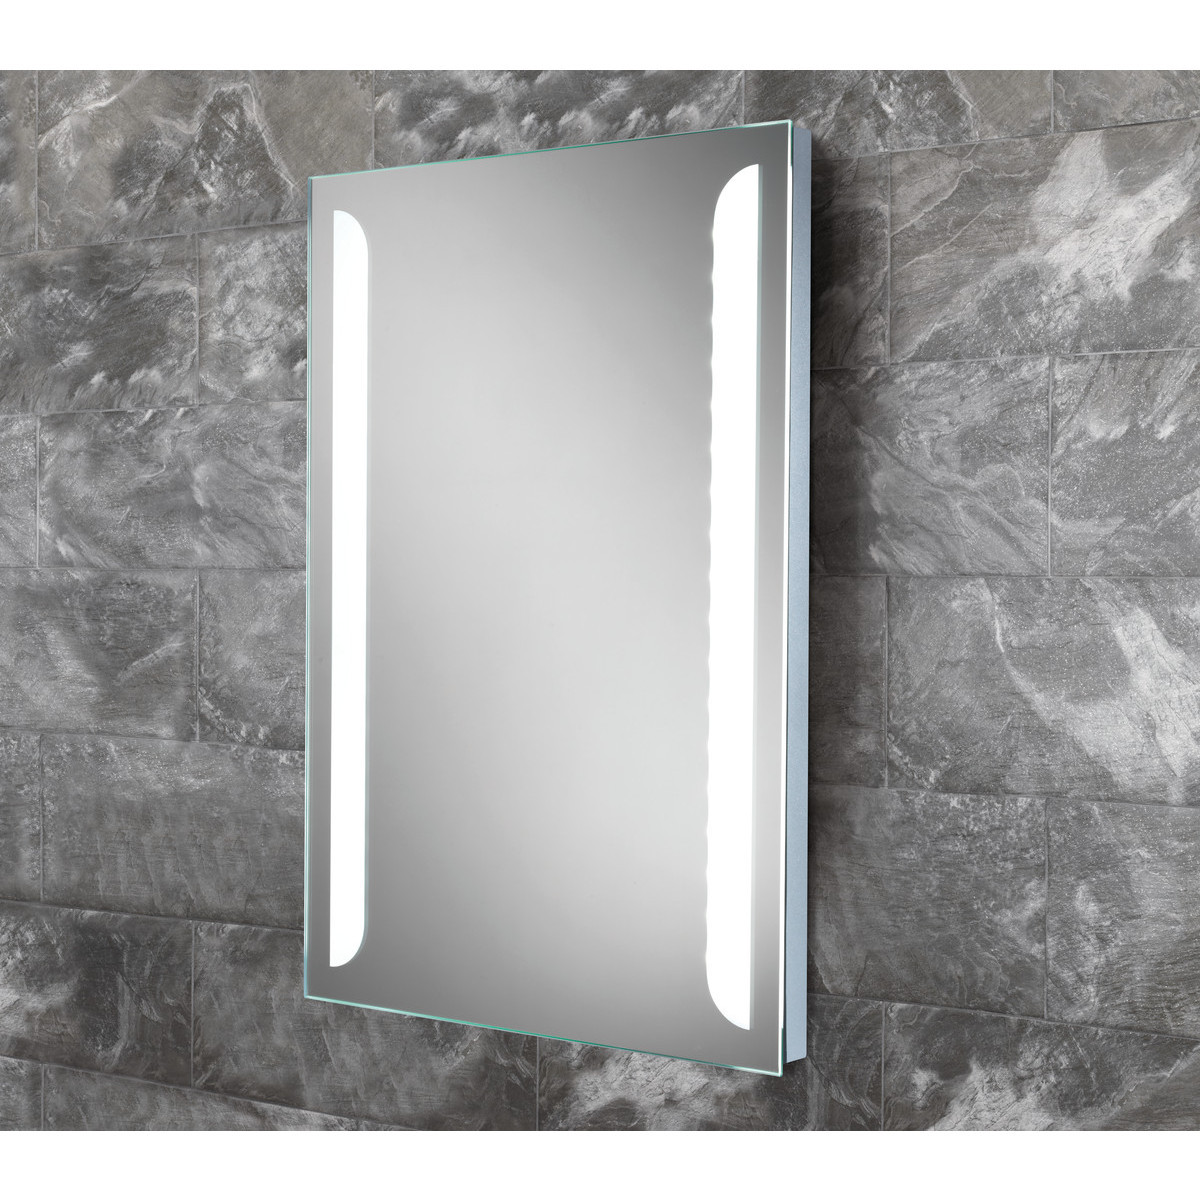 Illuminated Bathroom Mirror Livvy 700 X 500mm Led Backlit Illuminated Bathroom Mirror